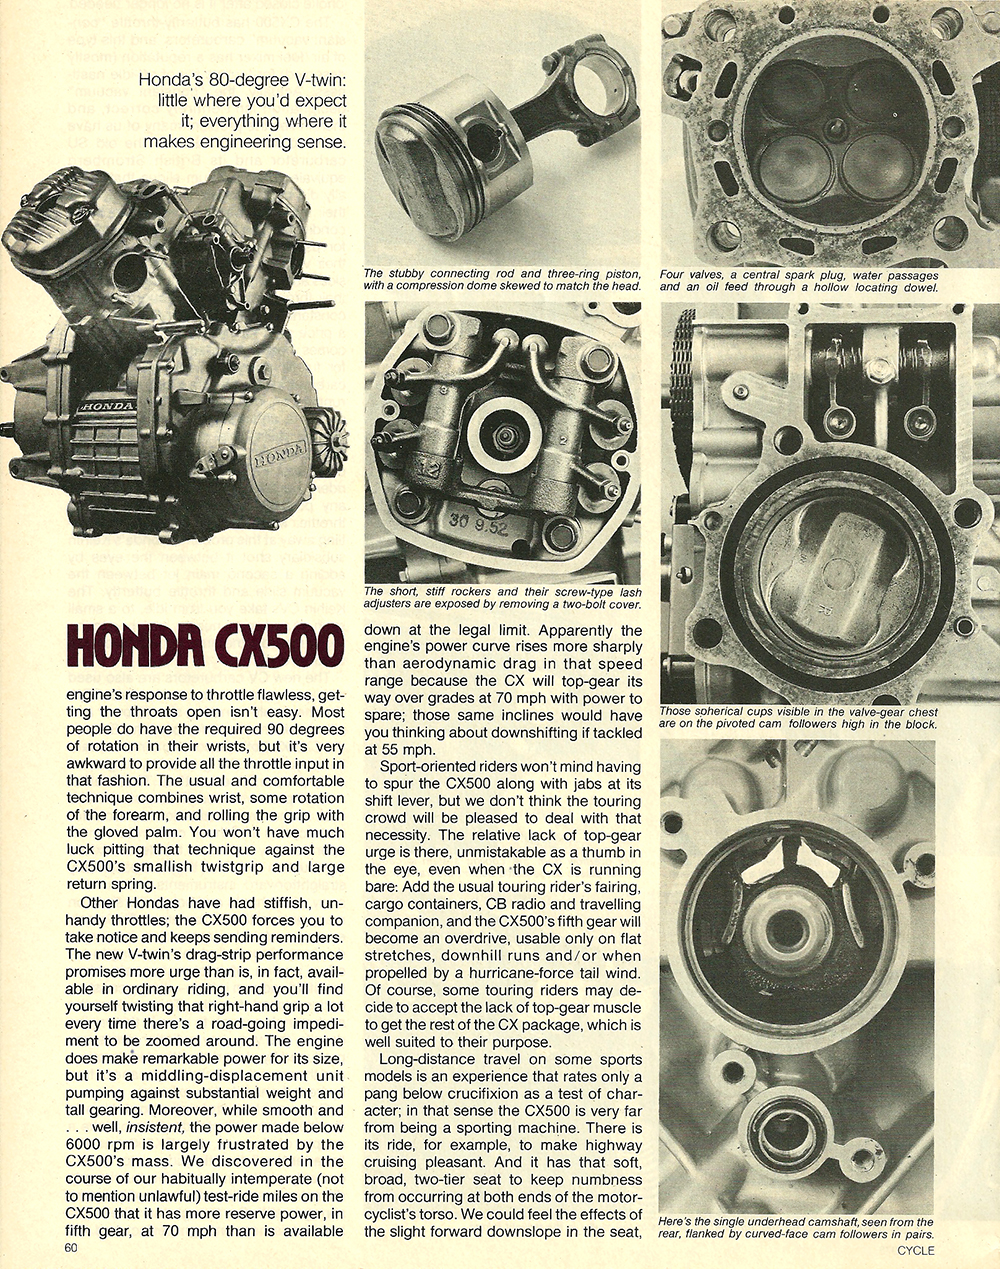 1978 Honda CX500 road test 05.jpg